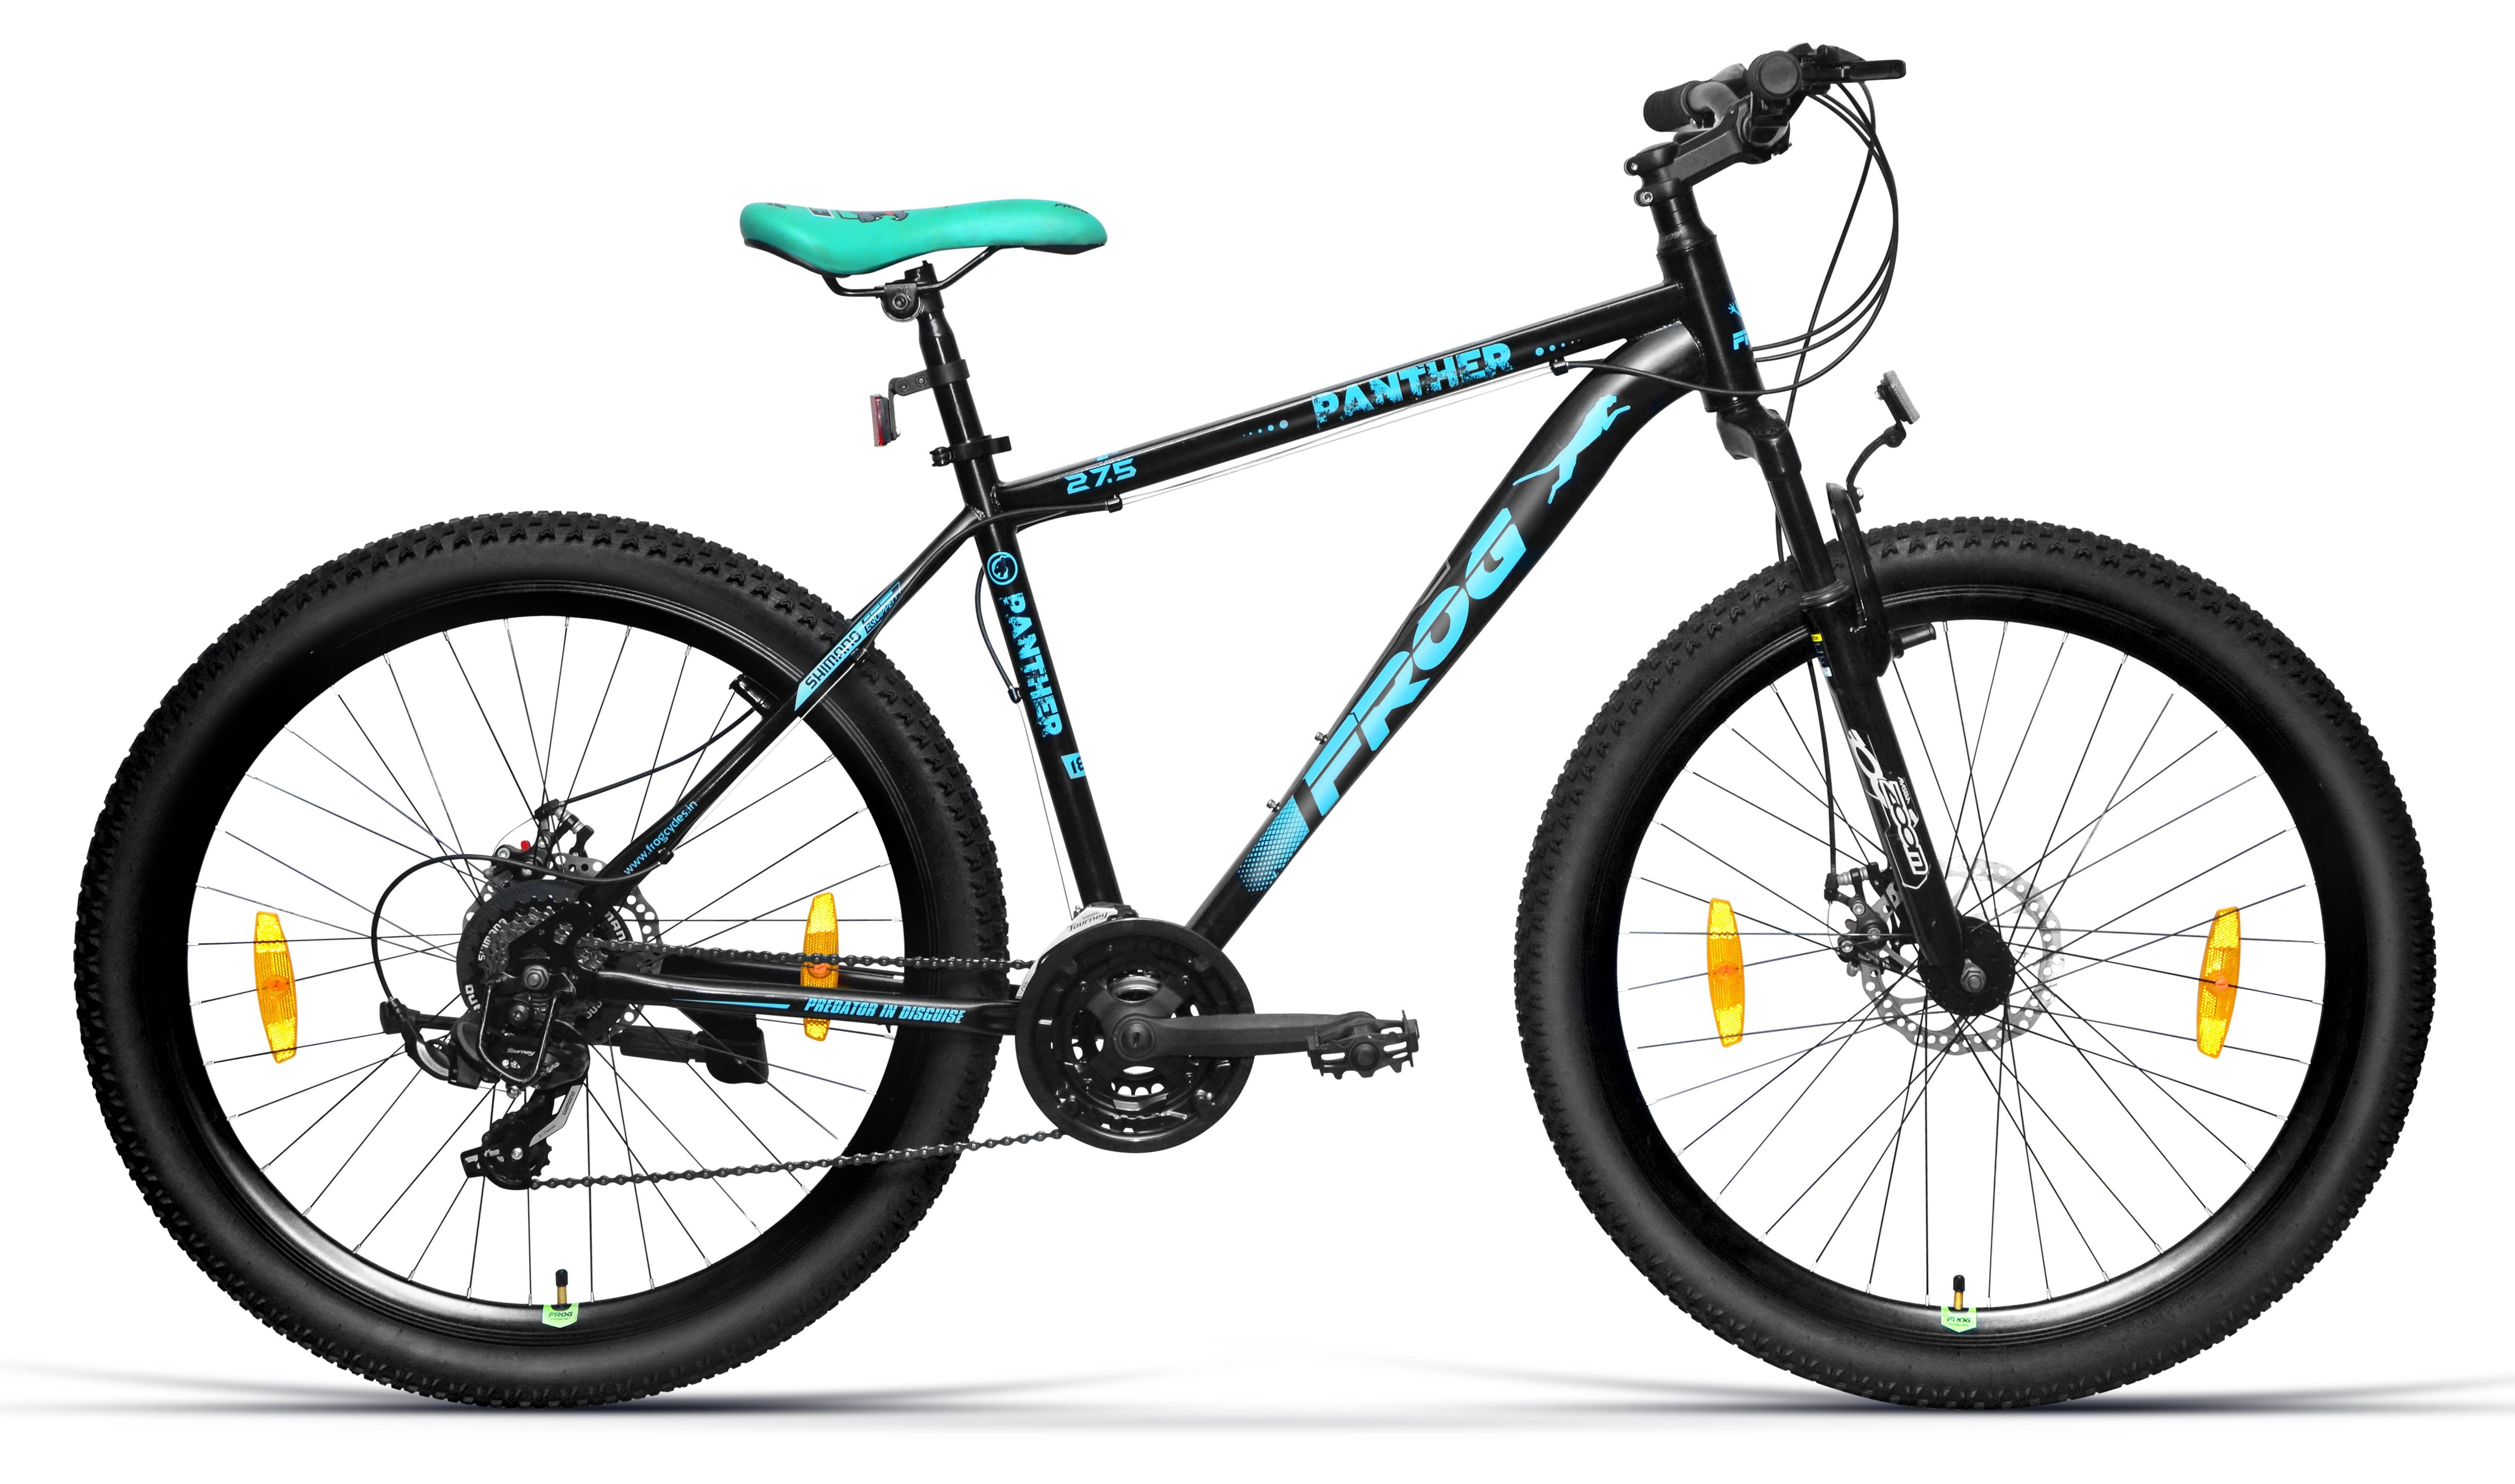 Panther 27 5 (Turquoise Color) image 1